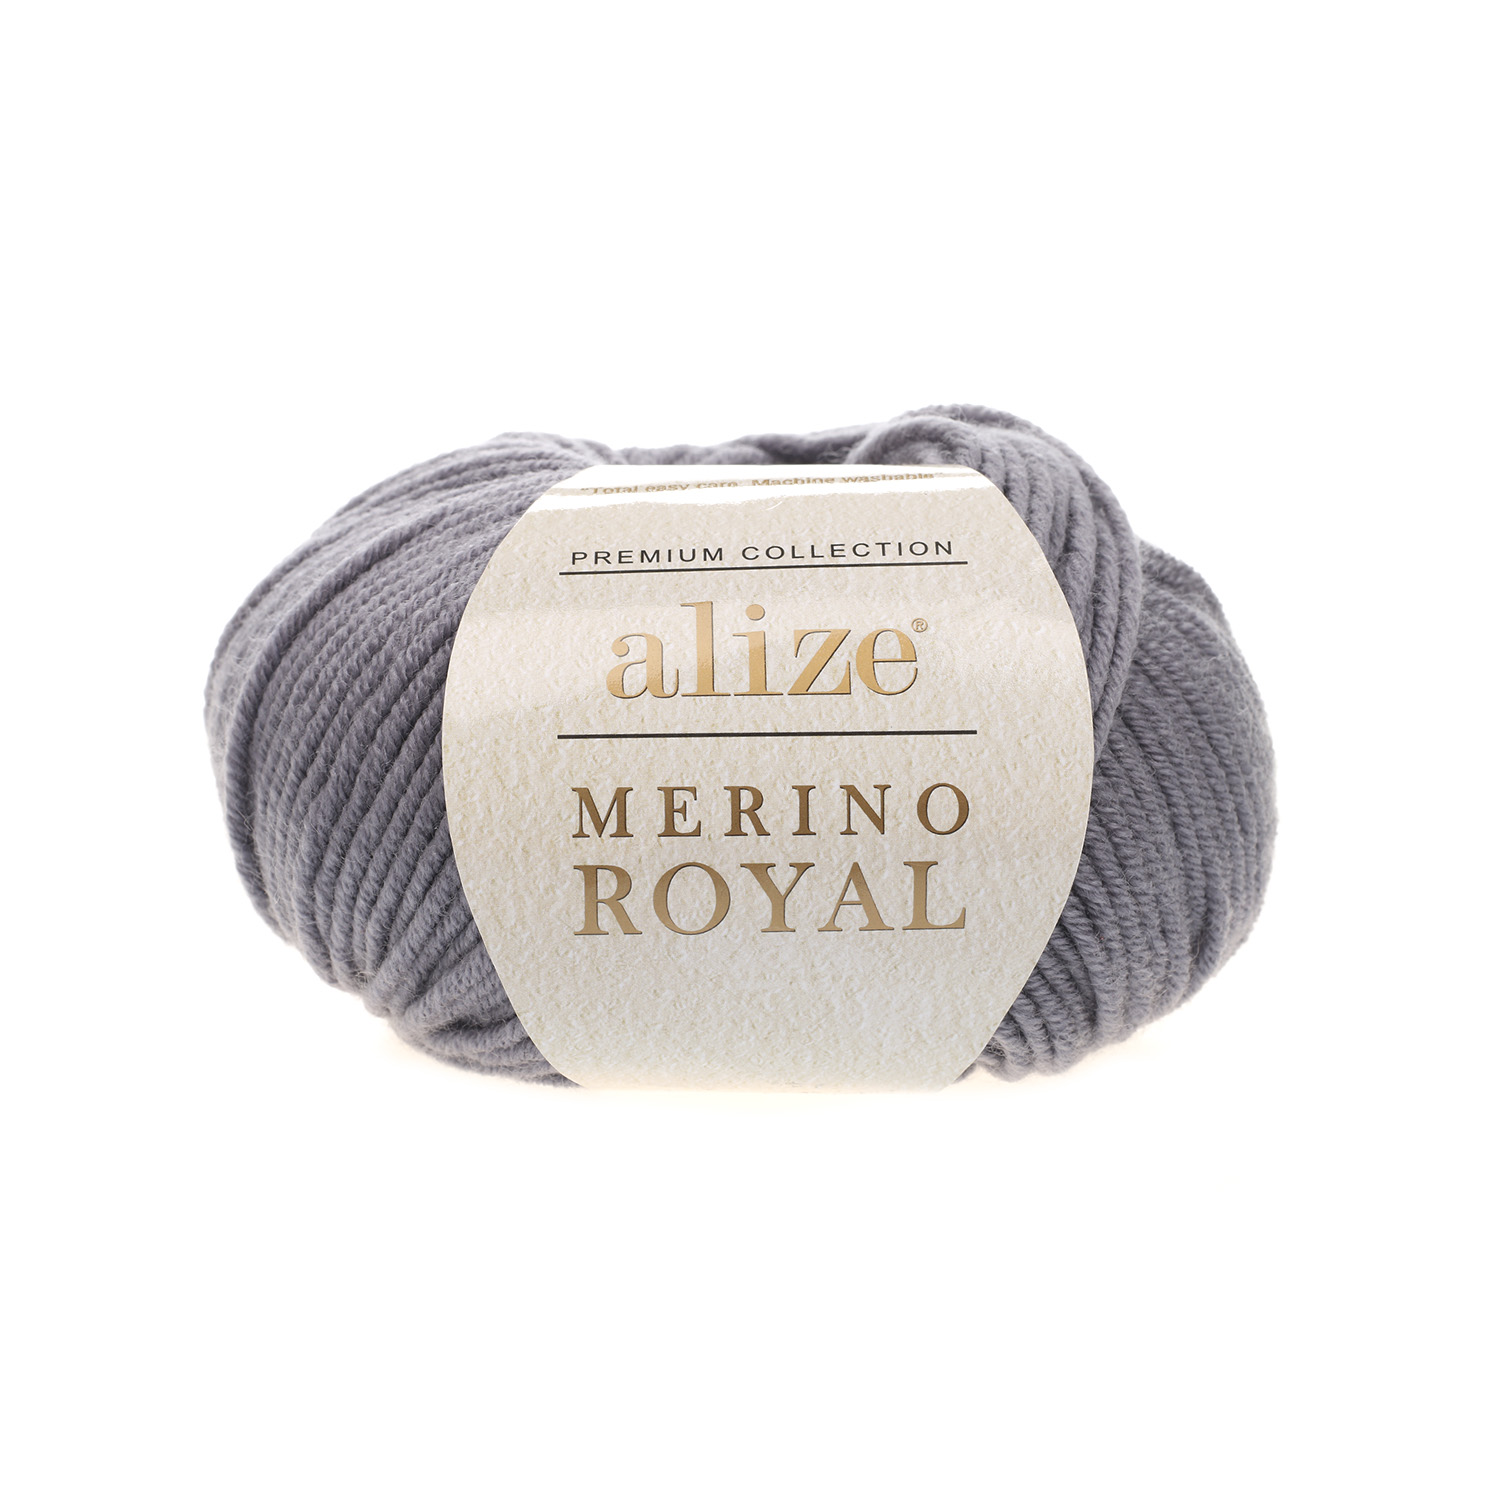 Tmavo sivá 100% merino vlna Merino Royal 87 (Superwash)